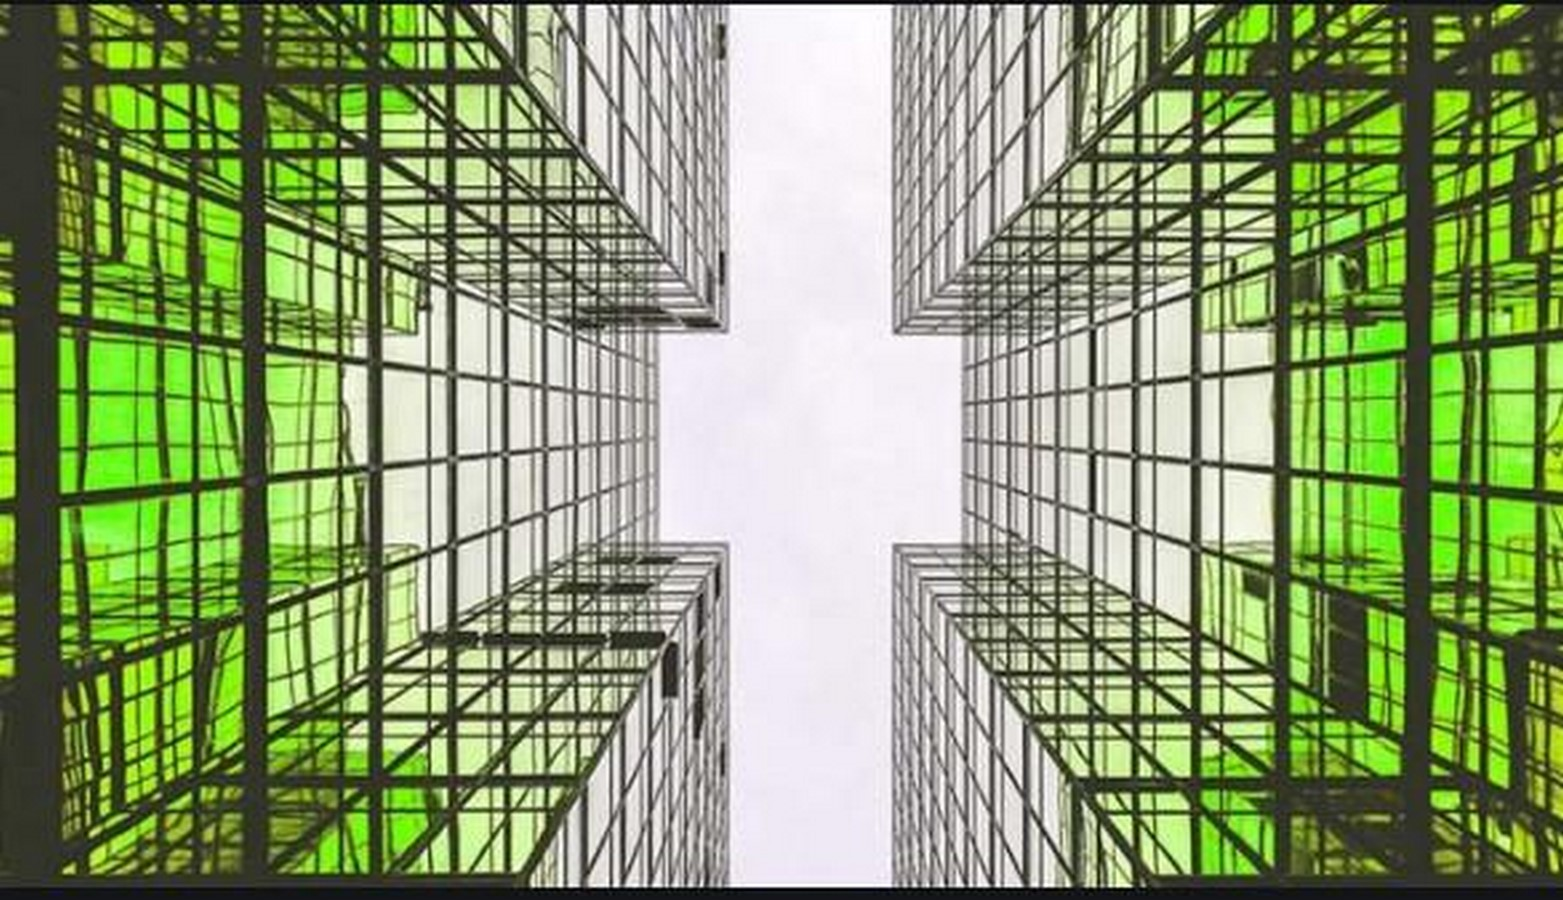 How important is sustainability and green buildings in the post pandemic world - Sheet3